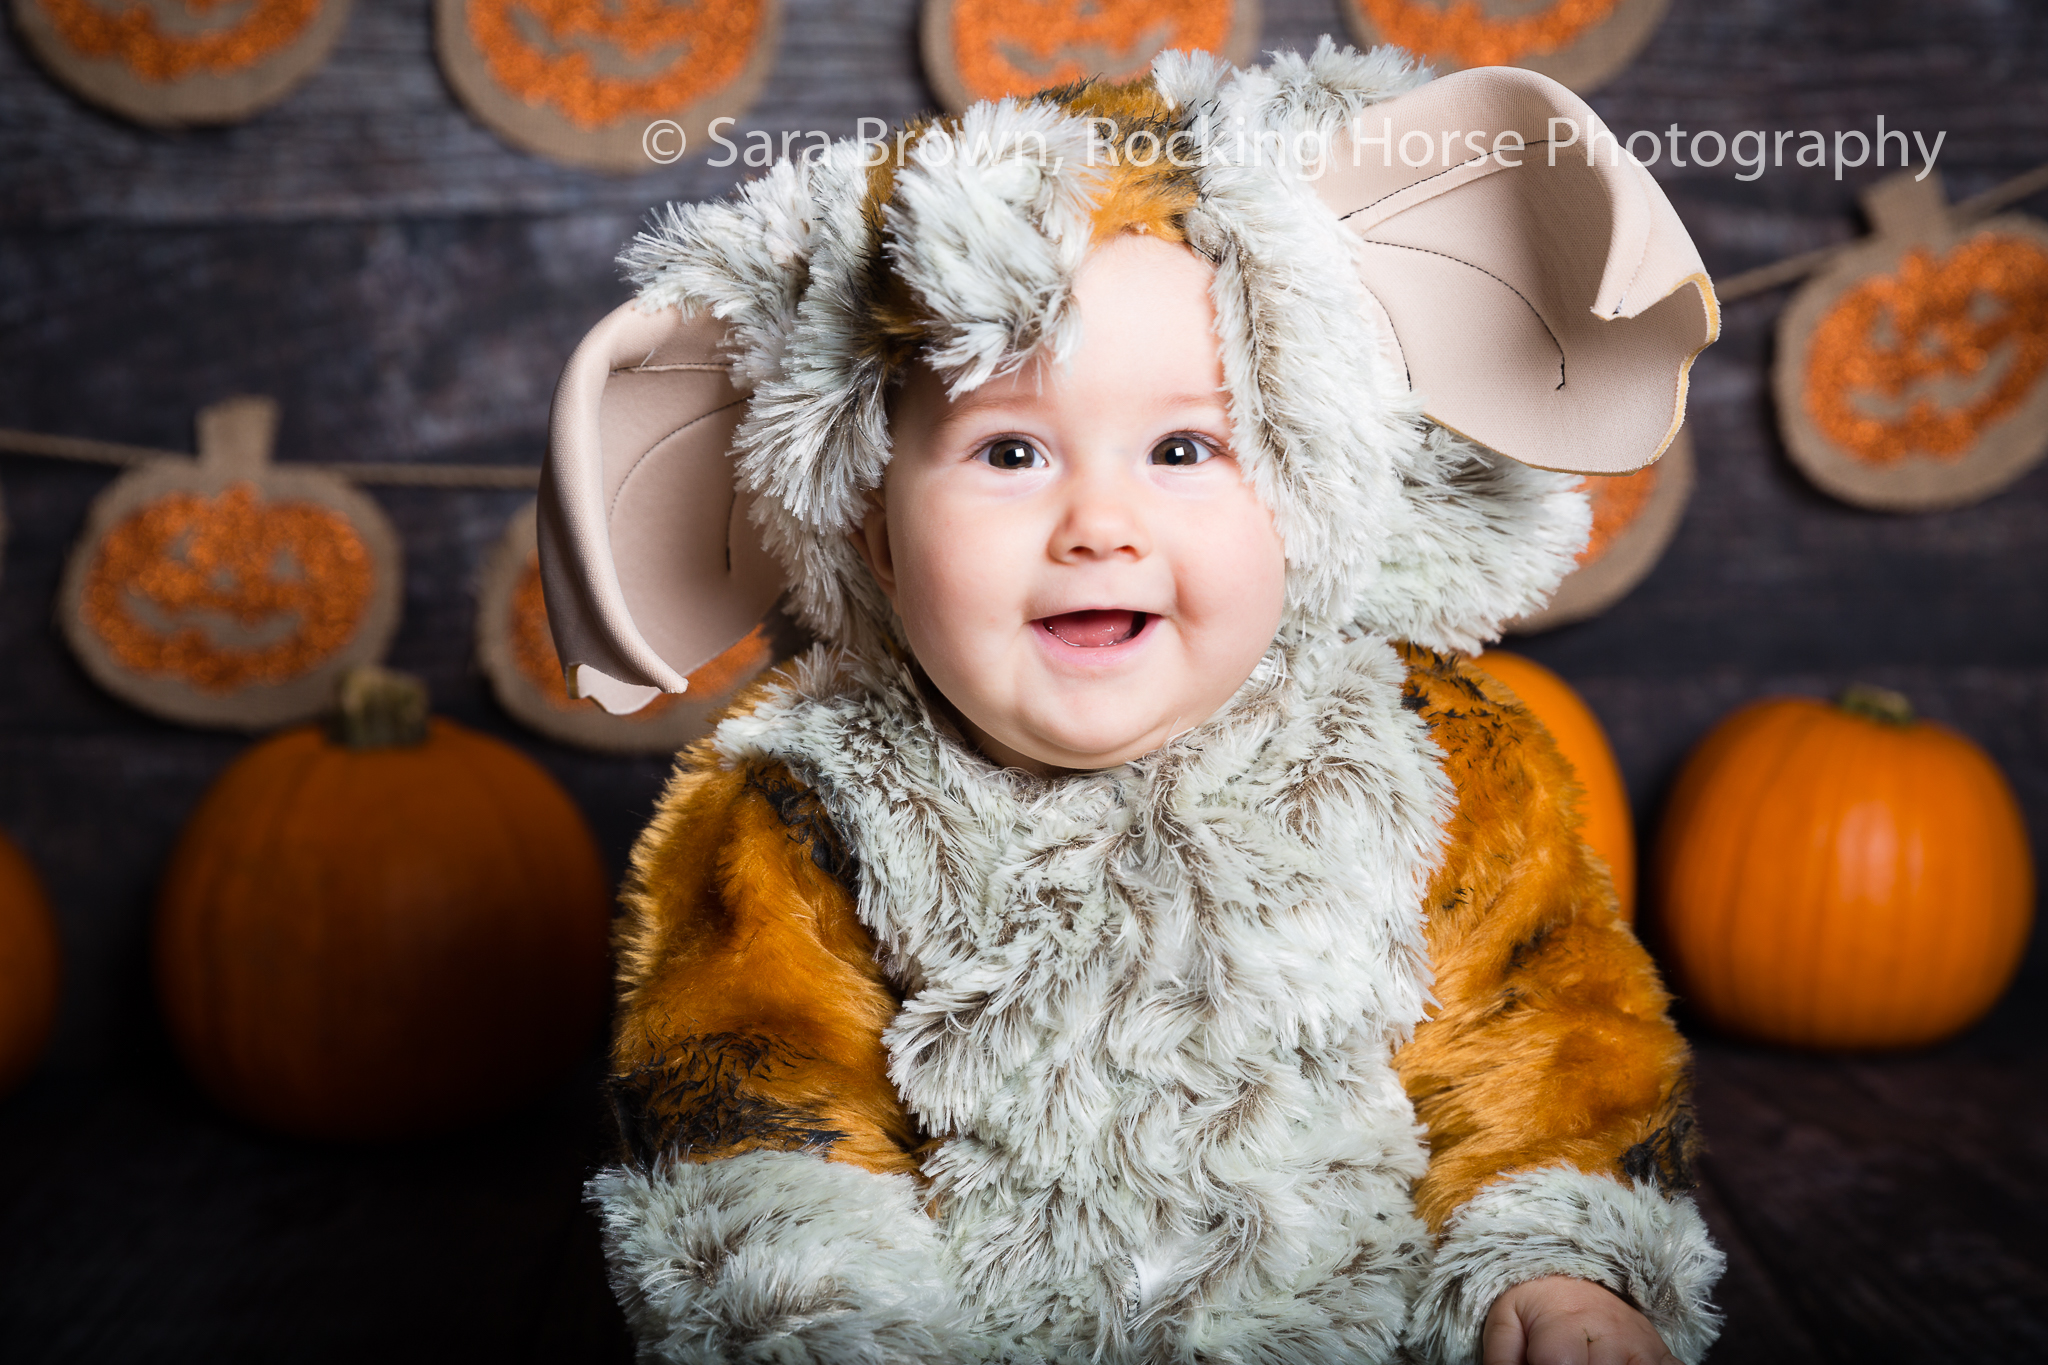 baby-furry- gremlin-photoshoot-themed-imahe-3L4A3918.jpg